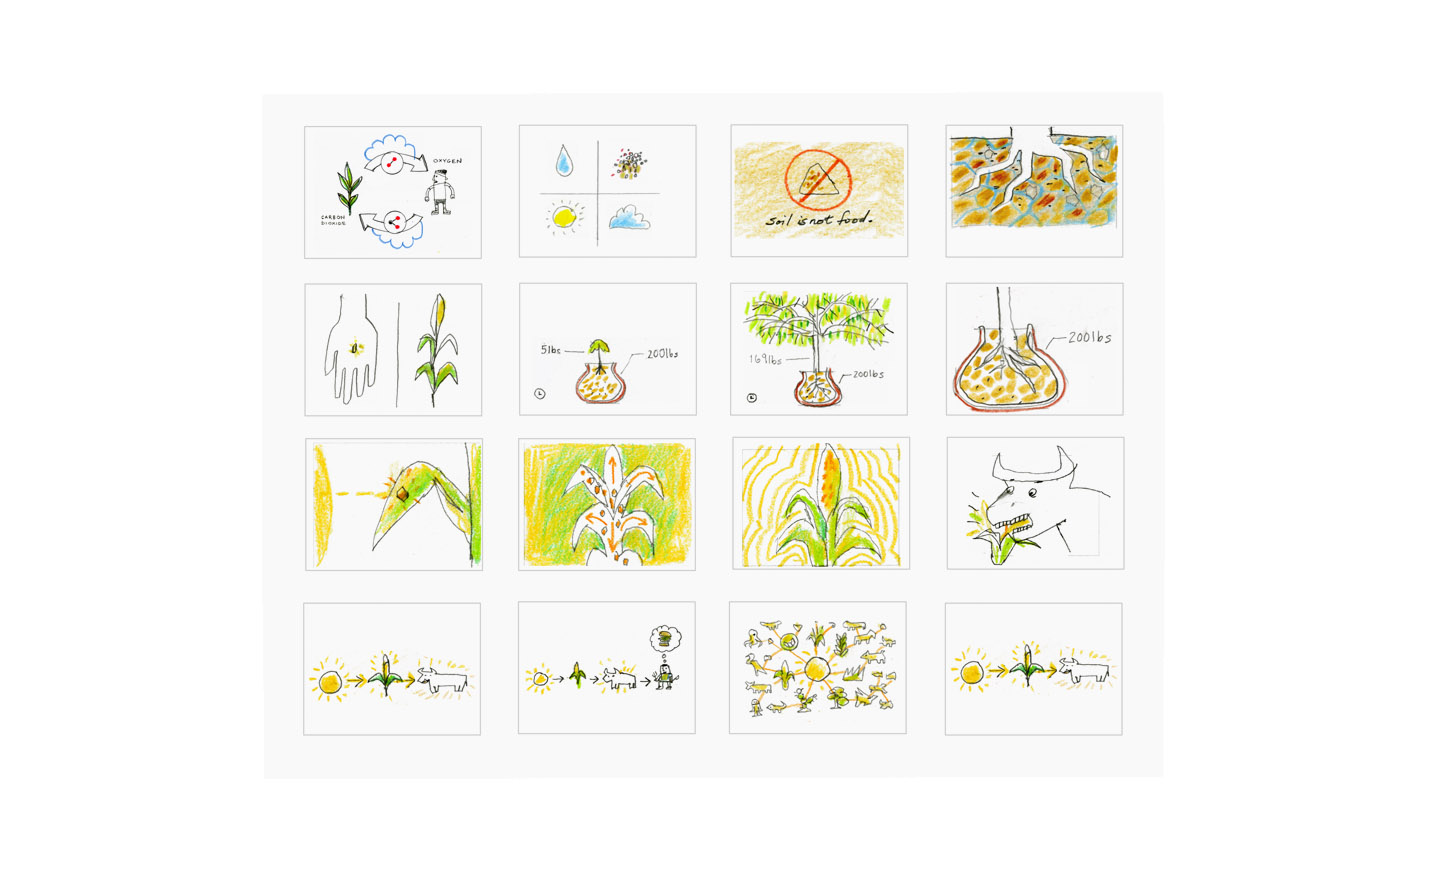 photosynthesis_sketches3.jpg